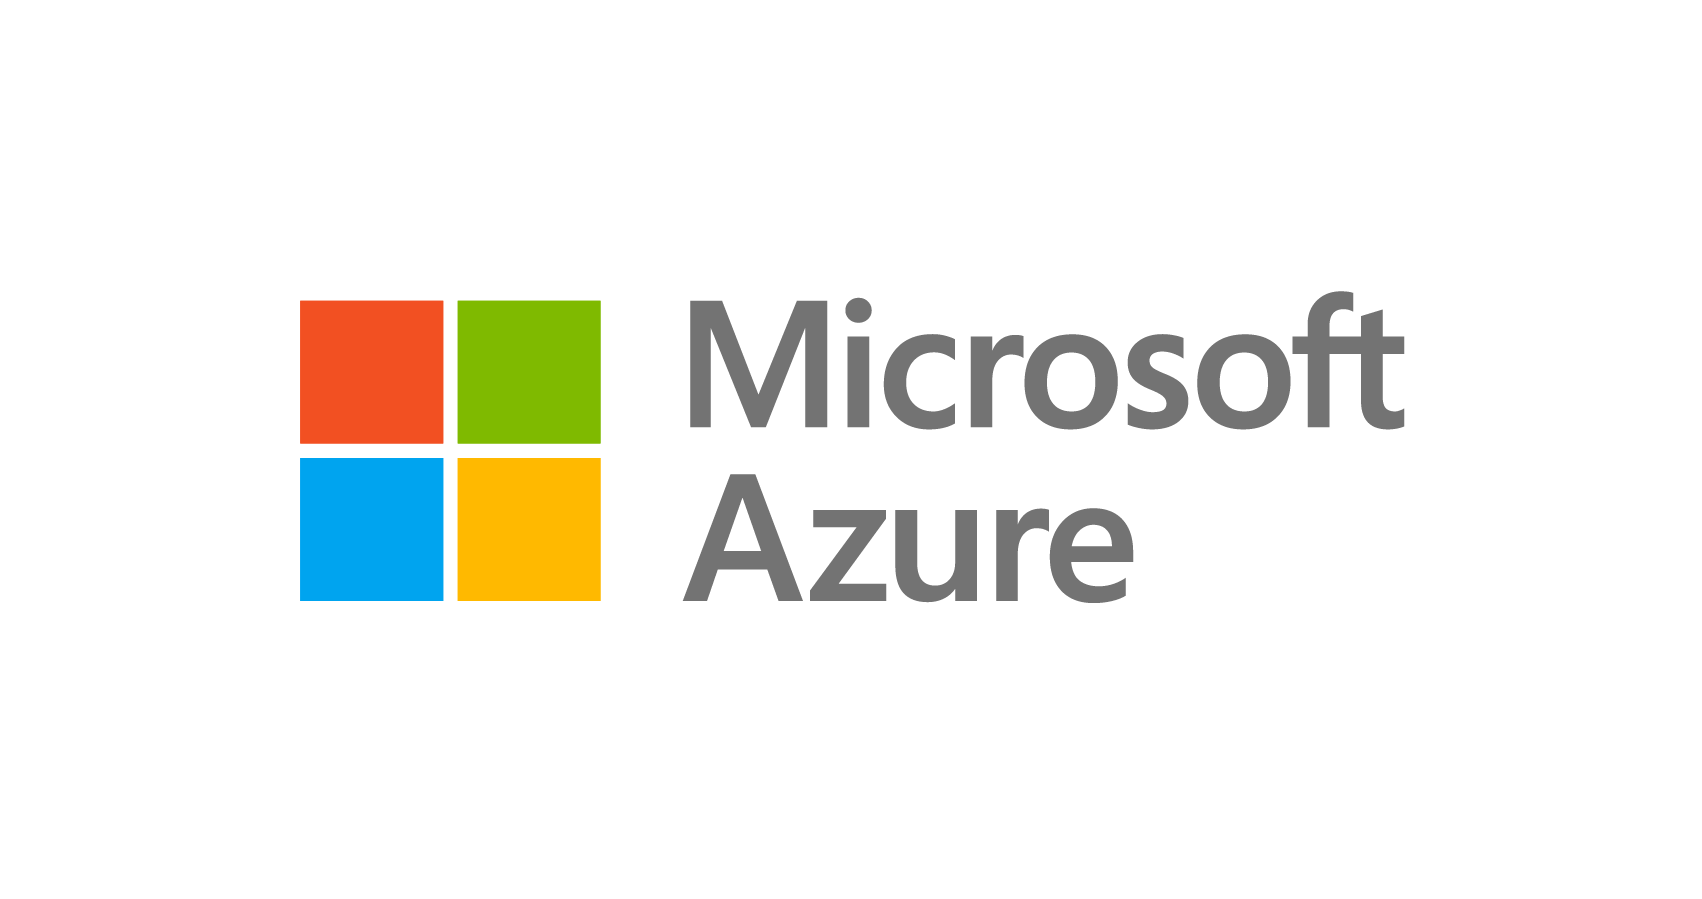 MS-Azure_logo_stacked_c-gray_rgb